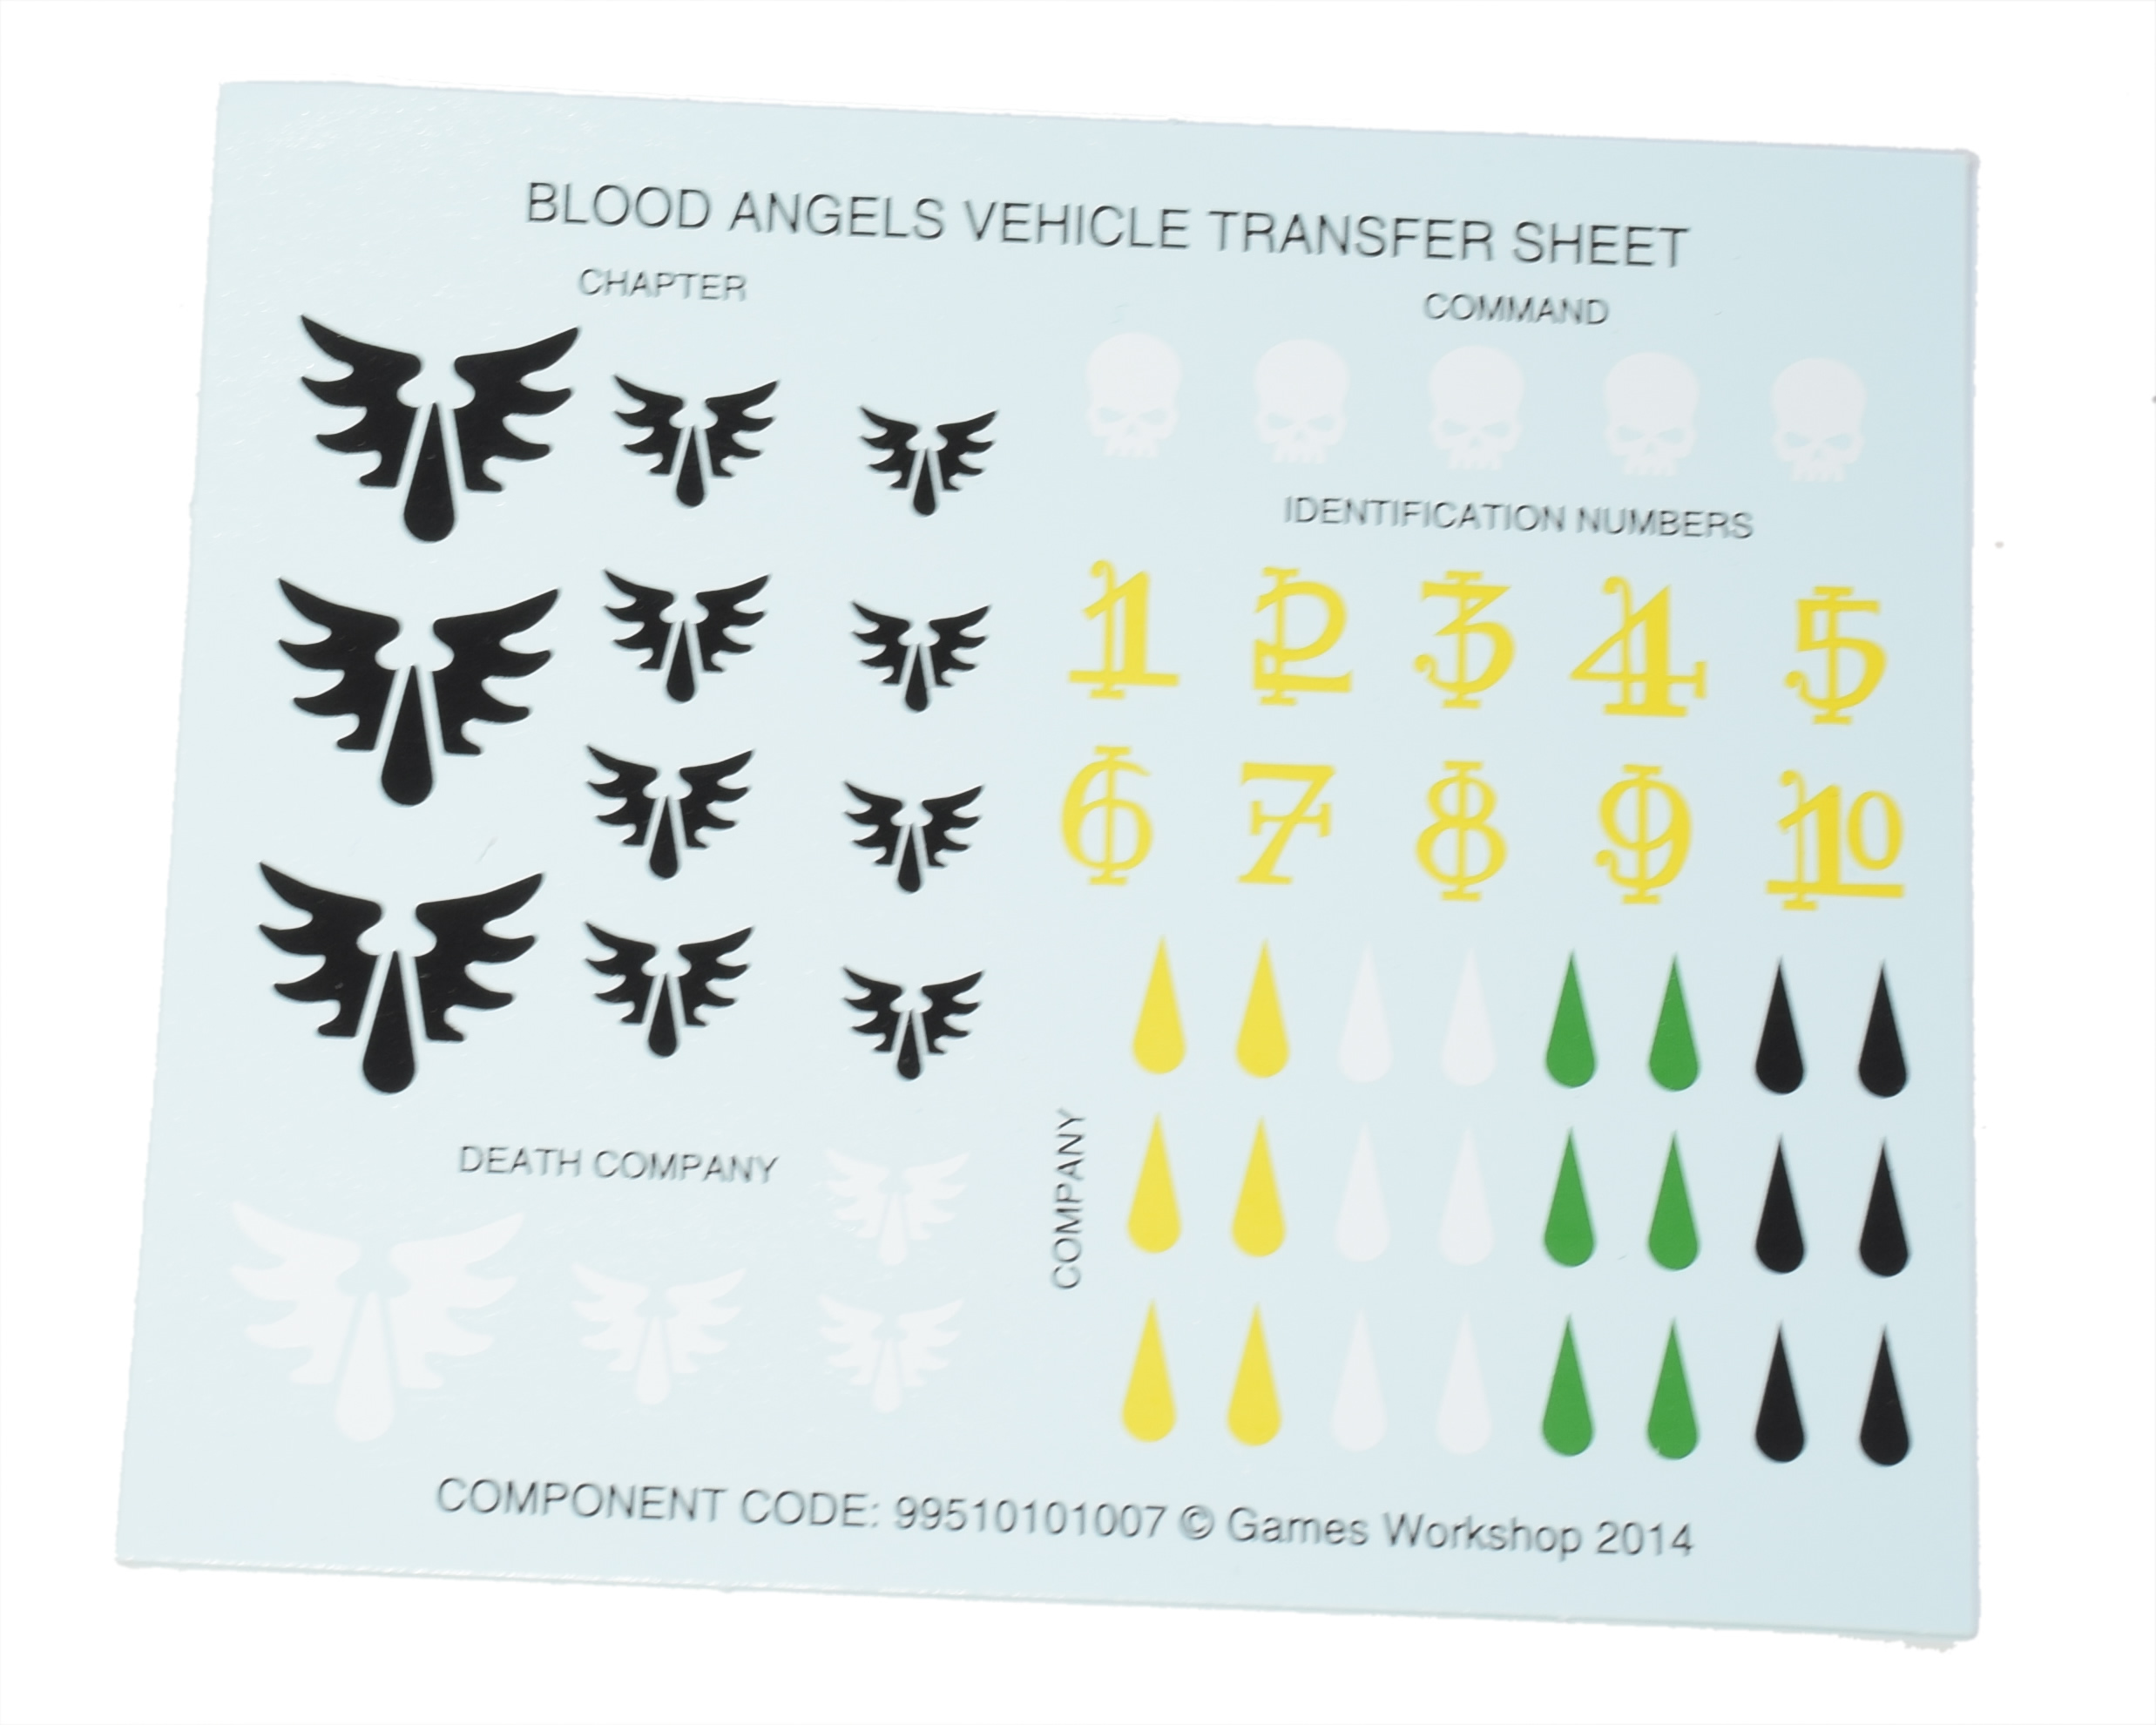 Blood Angels Vehicle Transfer Sheet